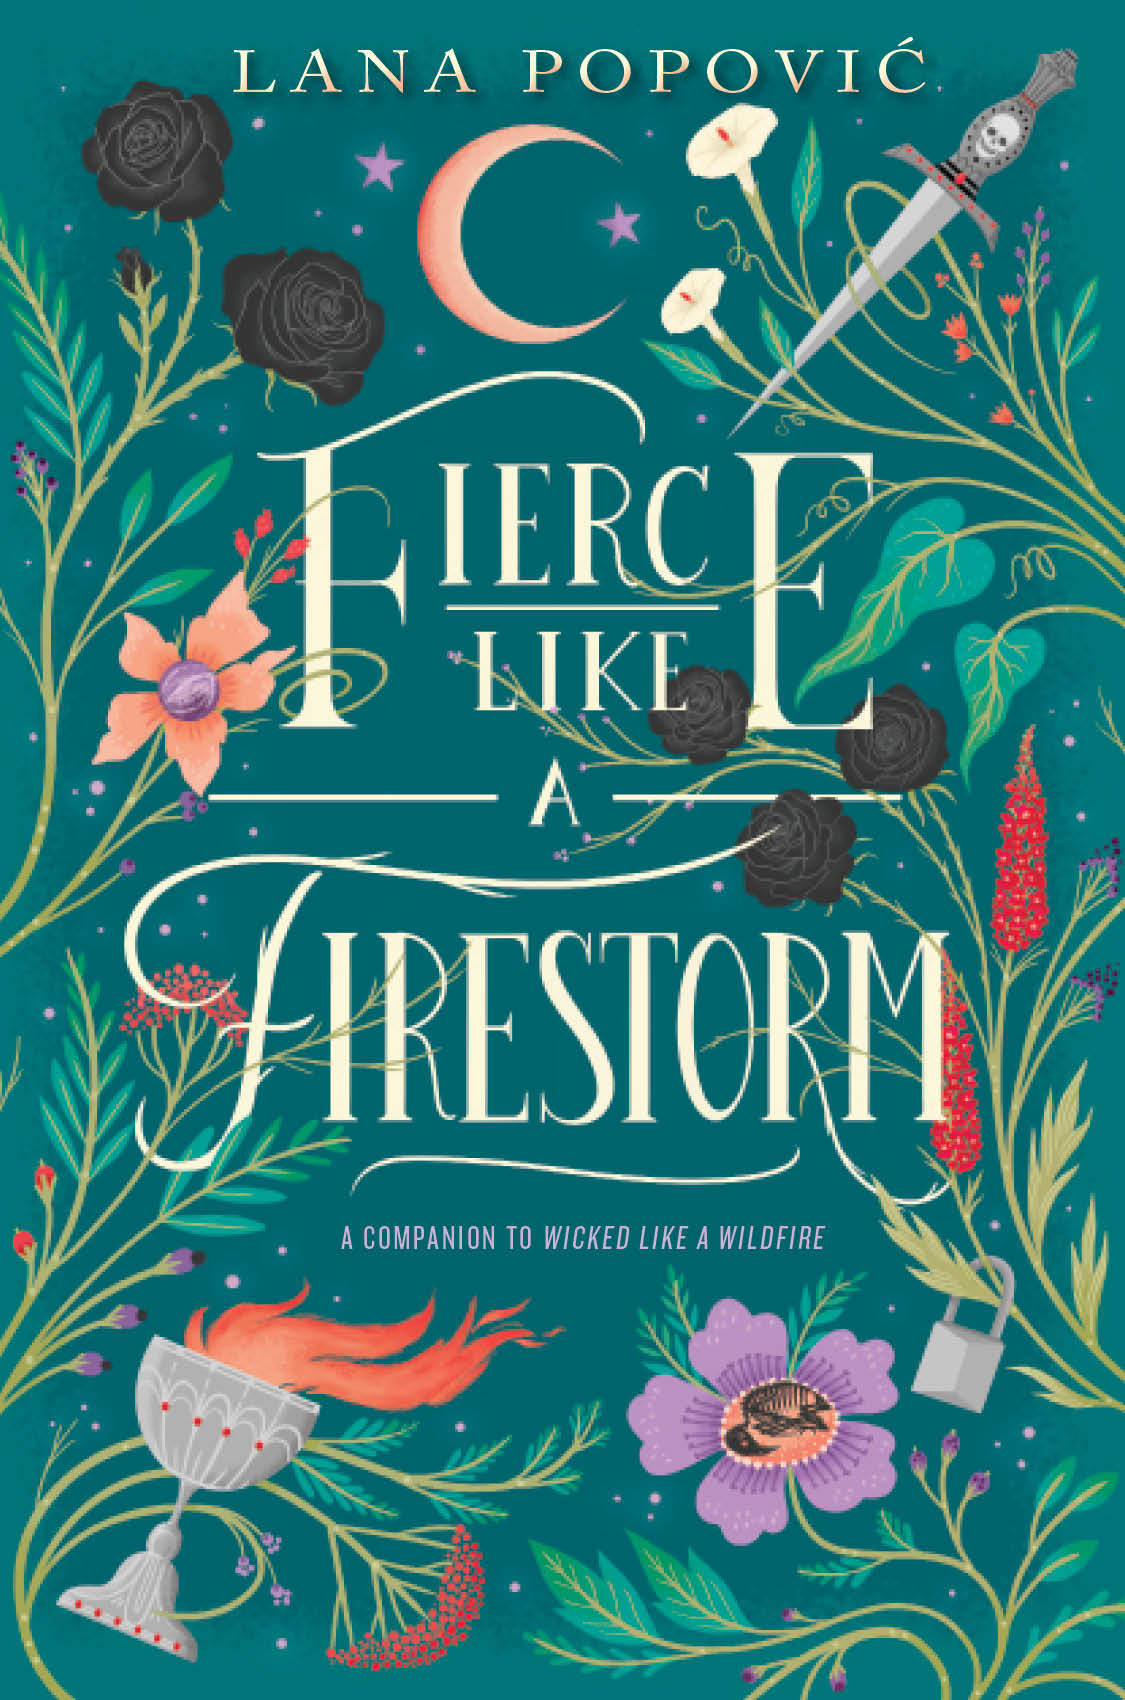 COVER DESIGN BY  LISA PERRIN